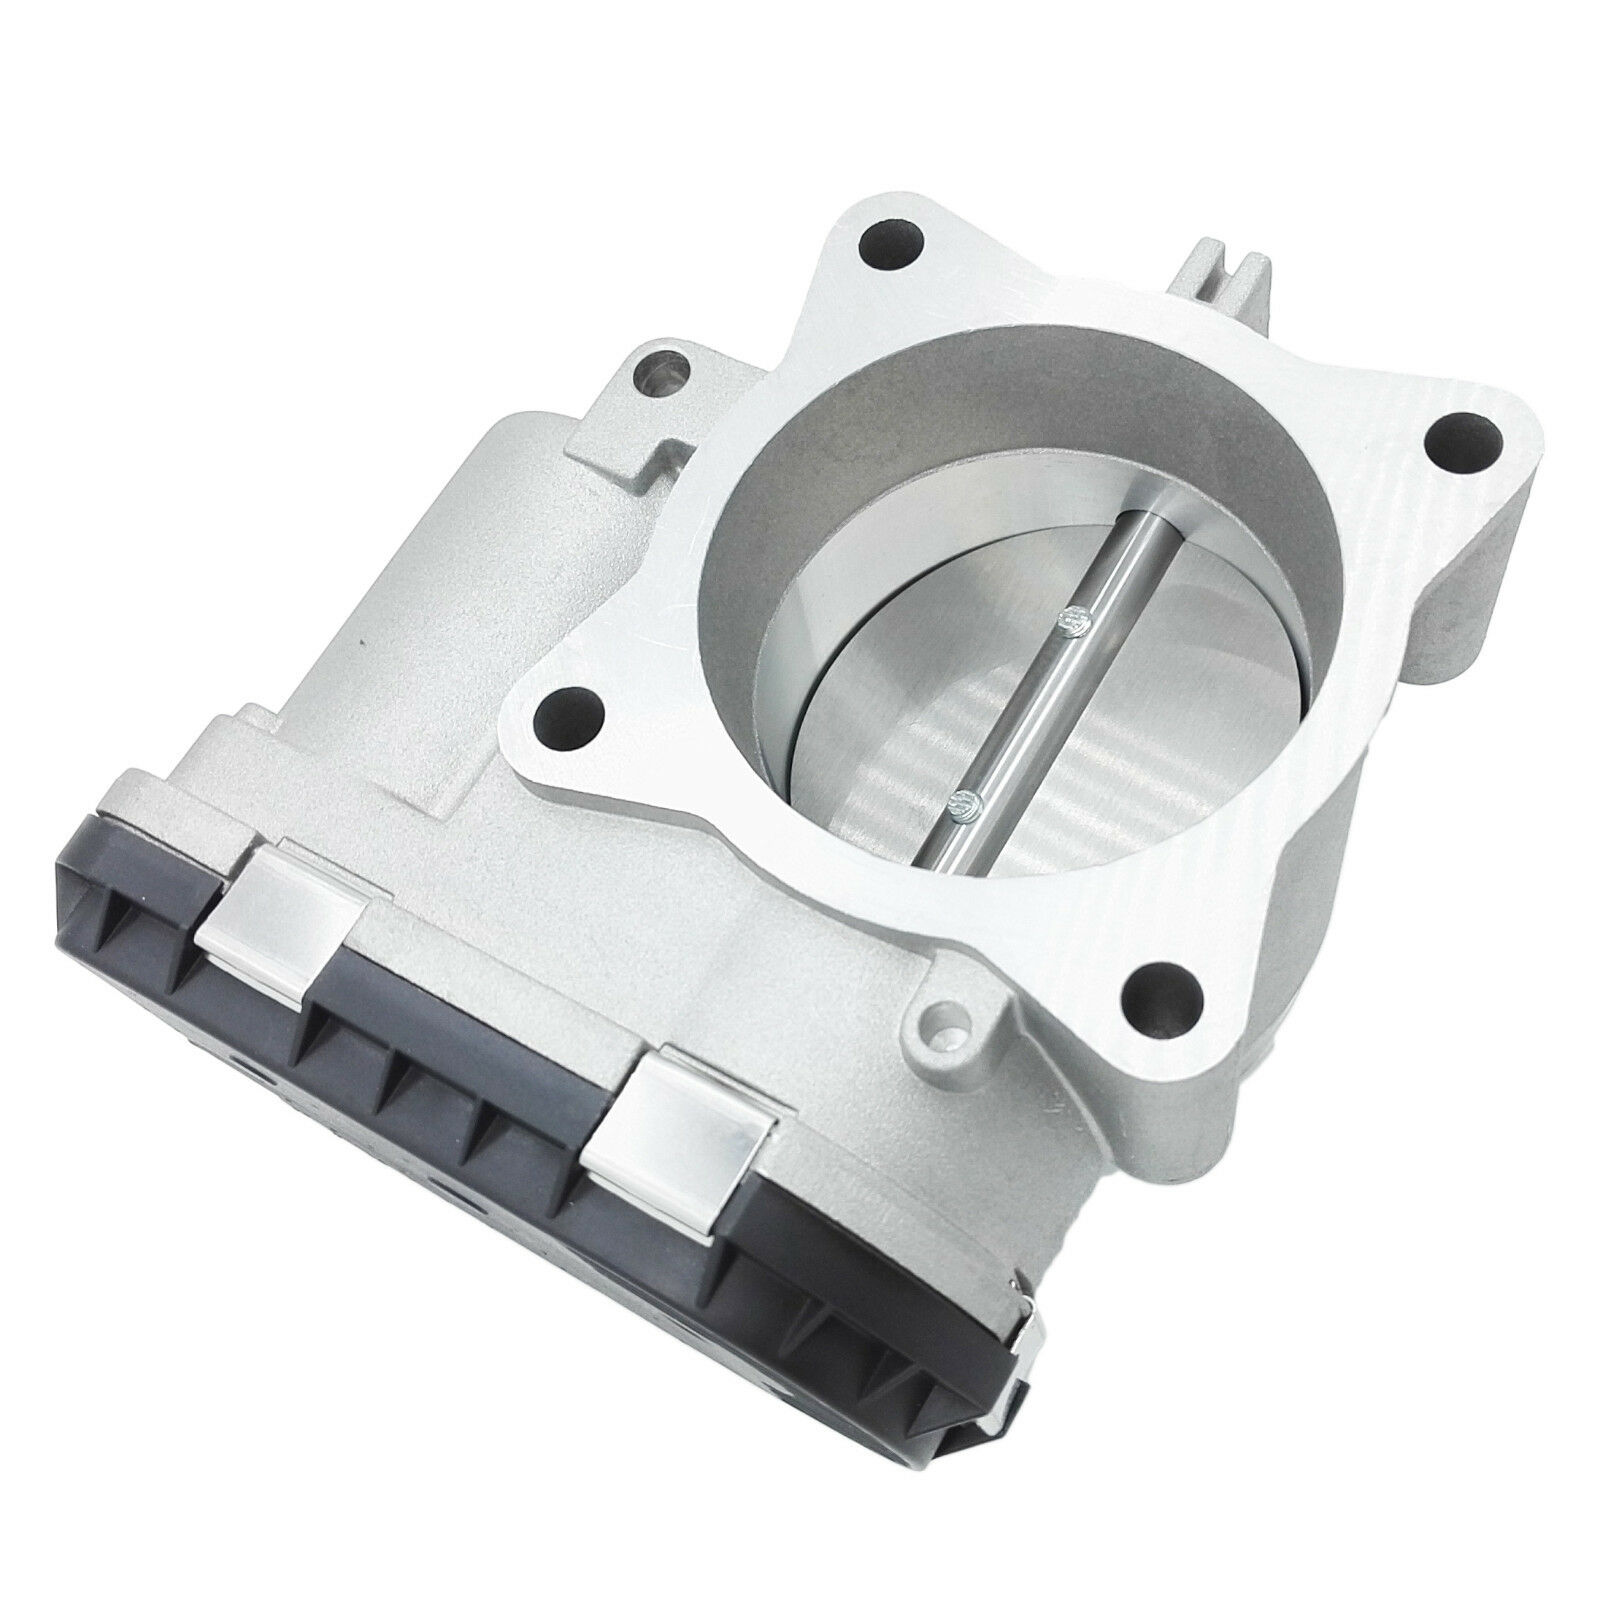 Worldwide delivery 30711554 in Adapter Of NaBaRa